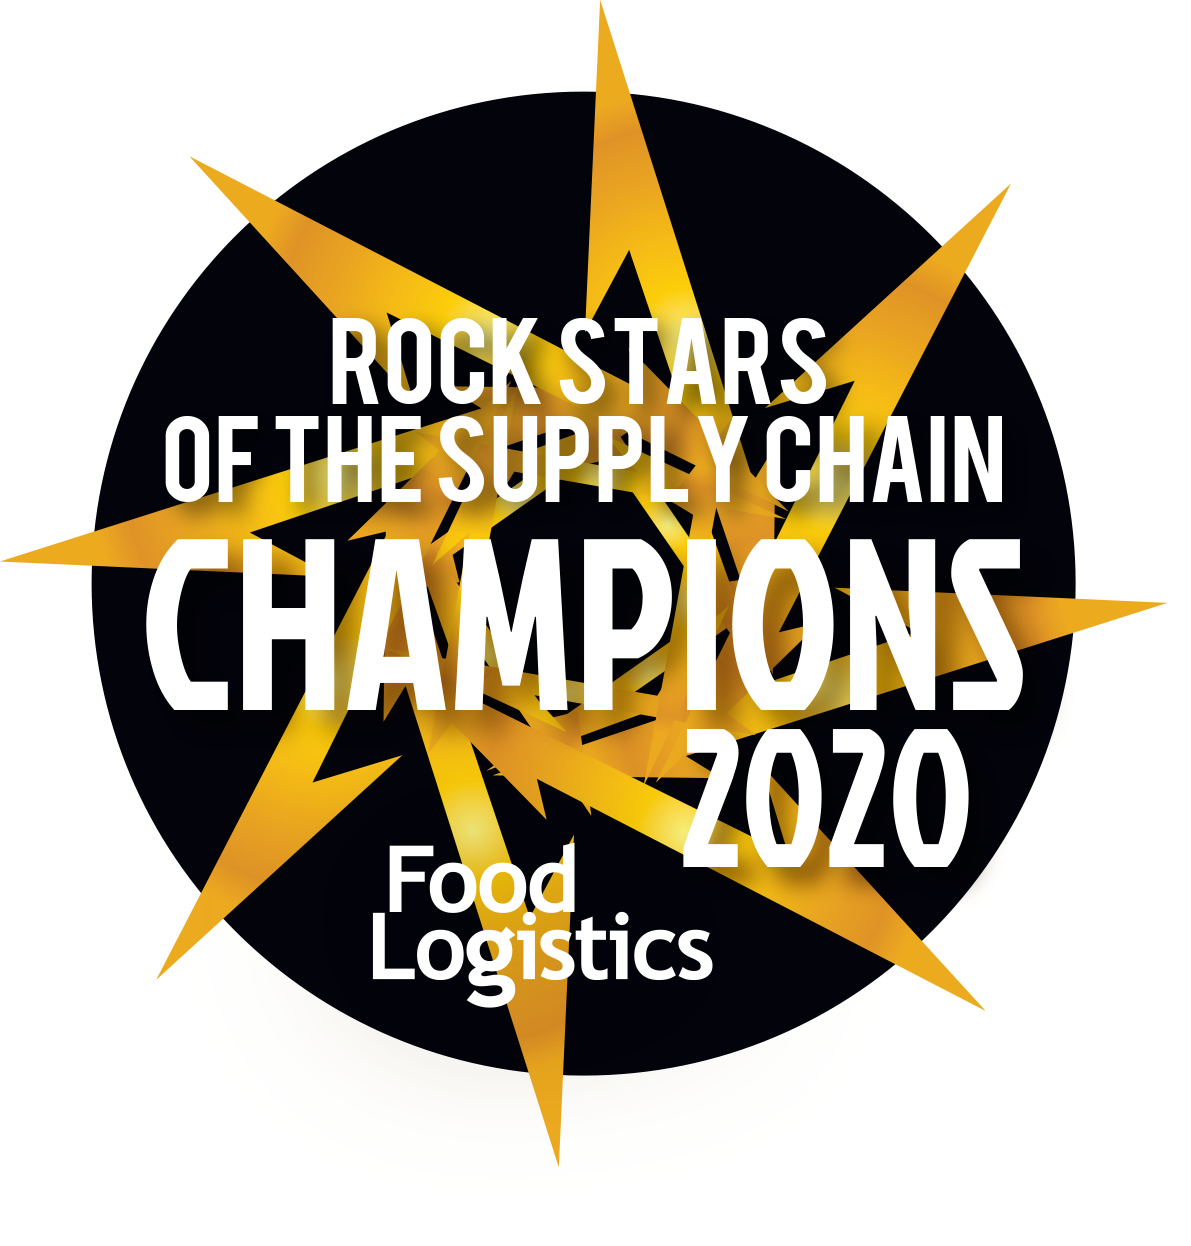 PINC's Matt Yearling named Rock Star of the Supply Chain by Food Logistics magazine